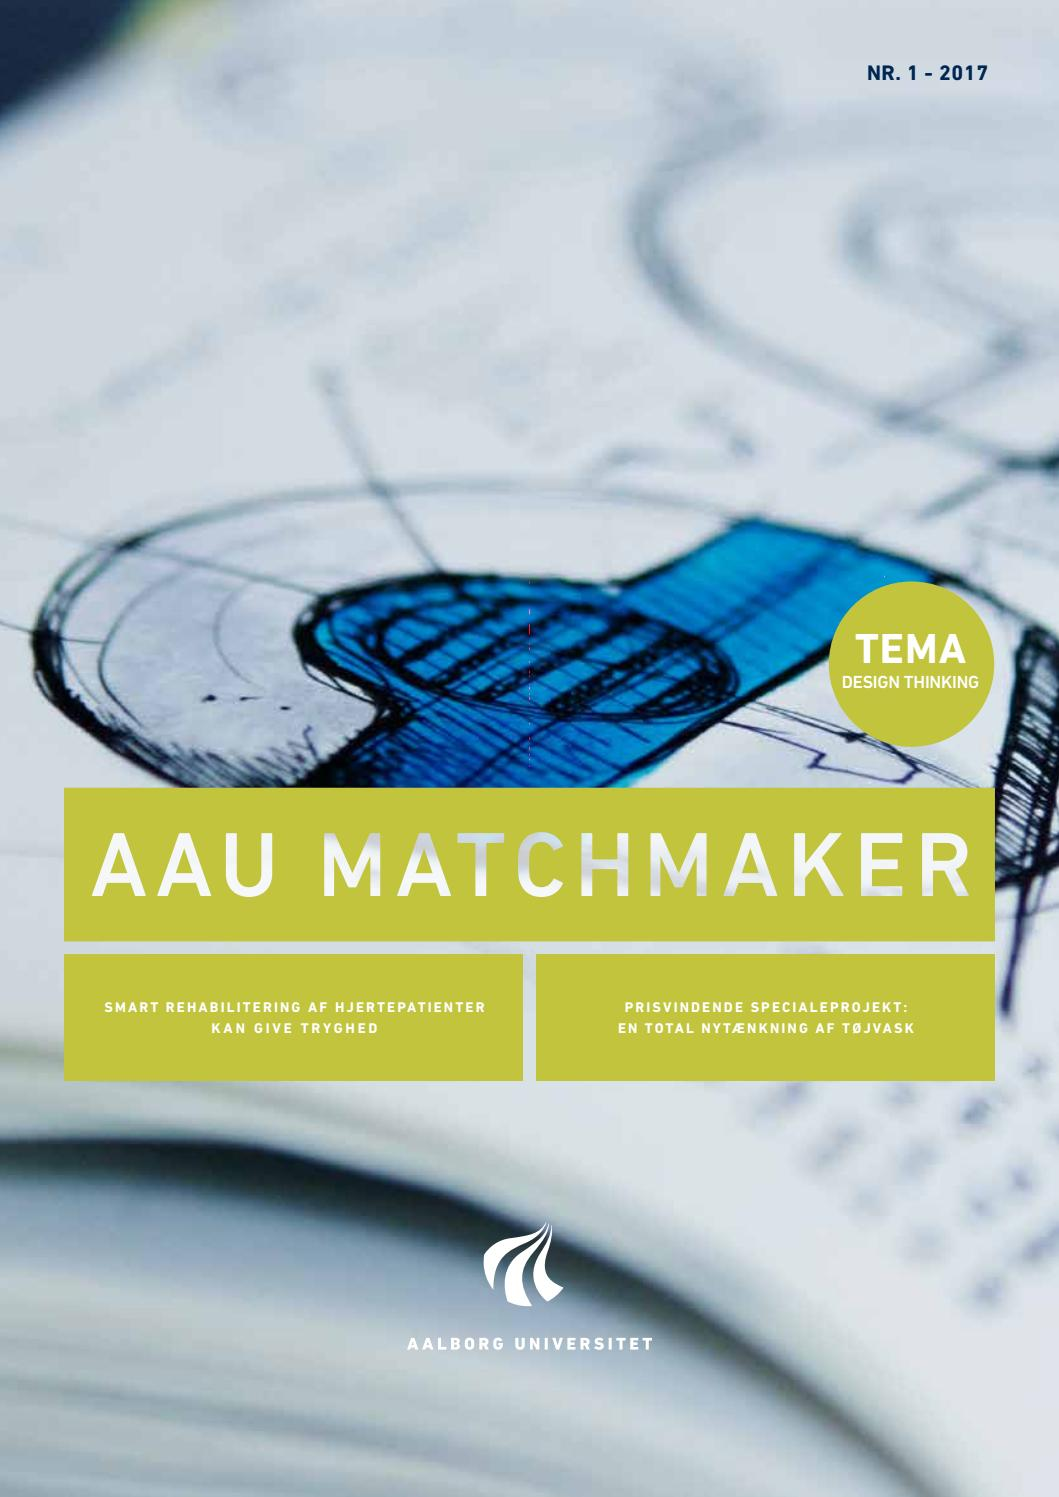 aau matchmaking magasin